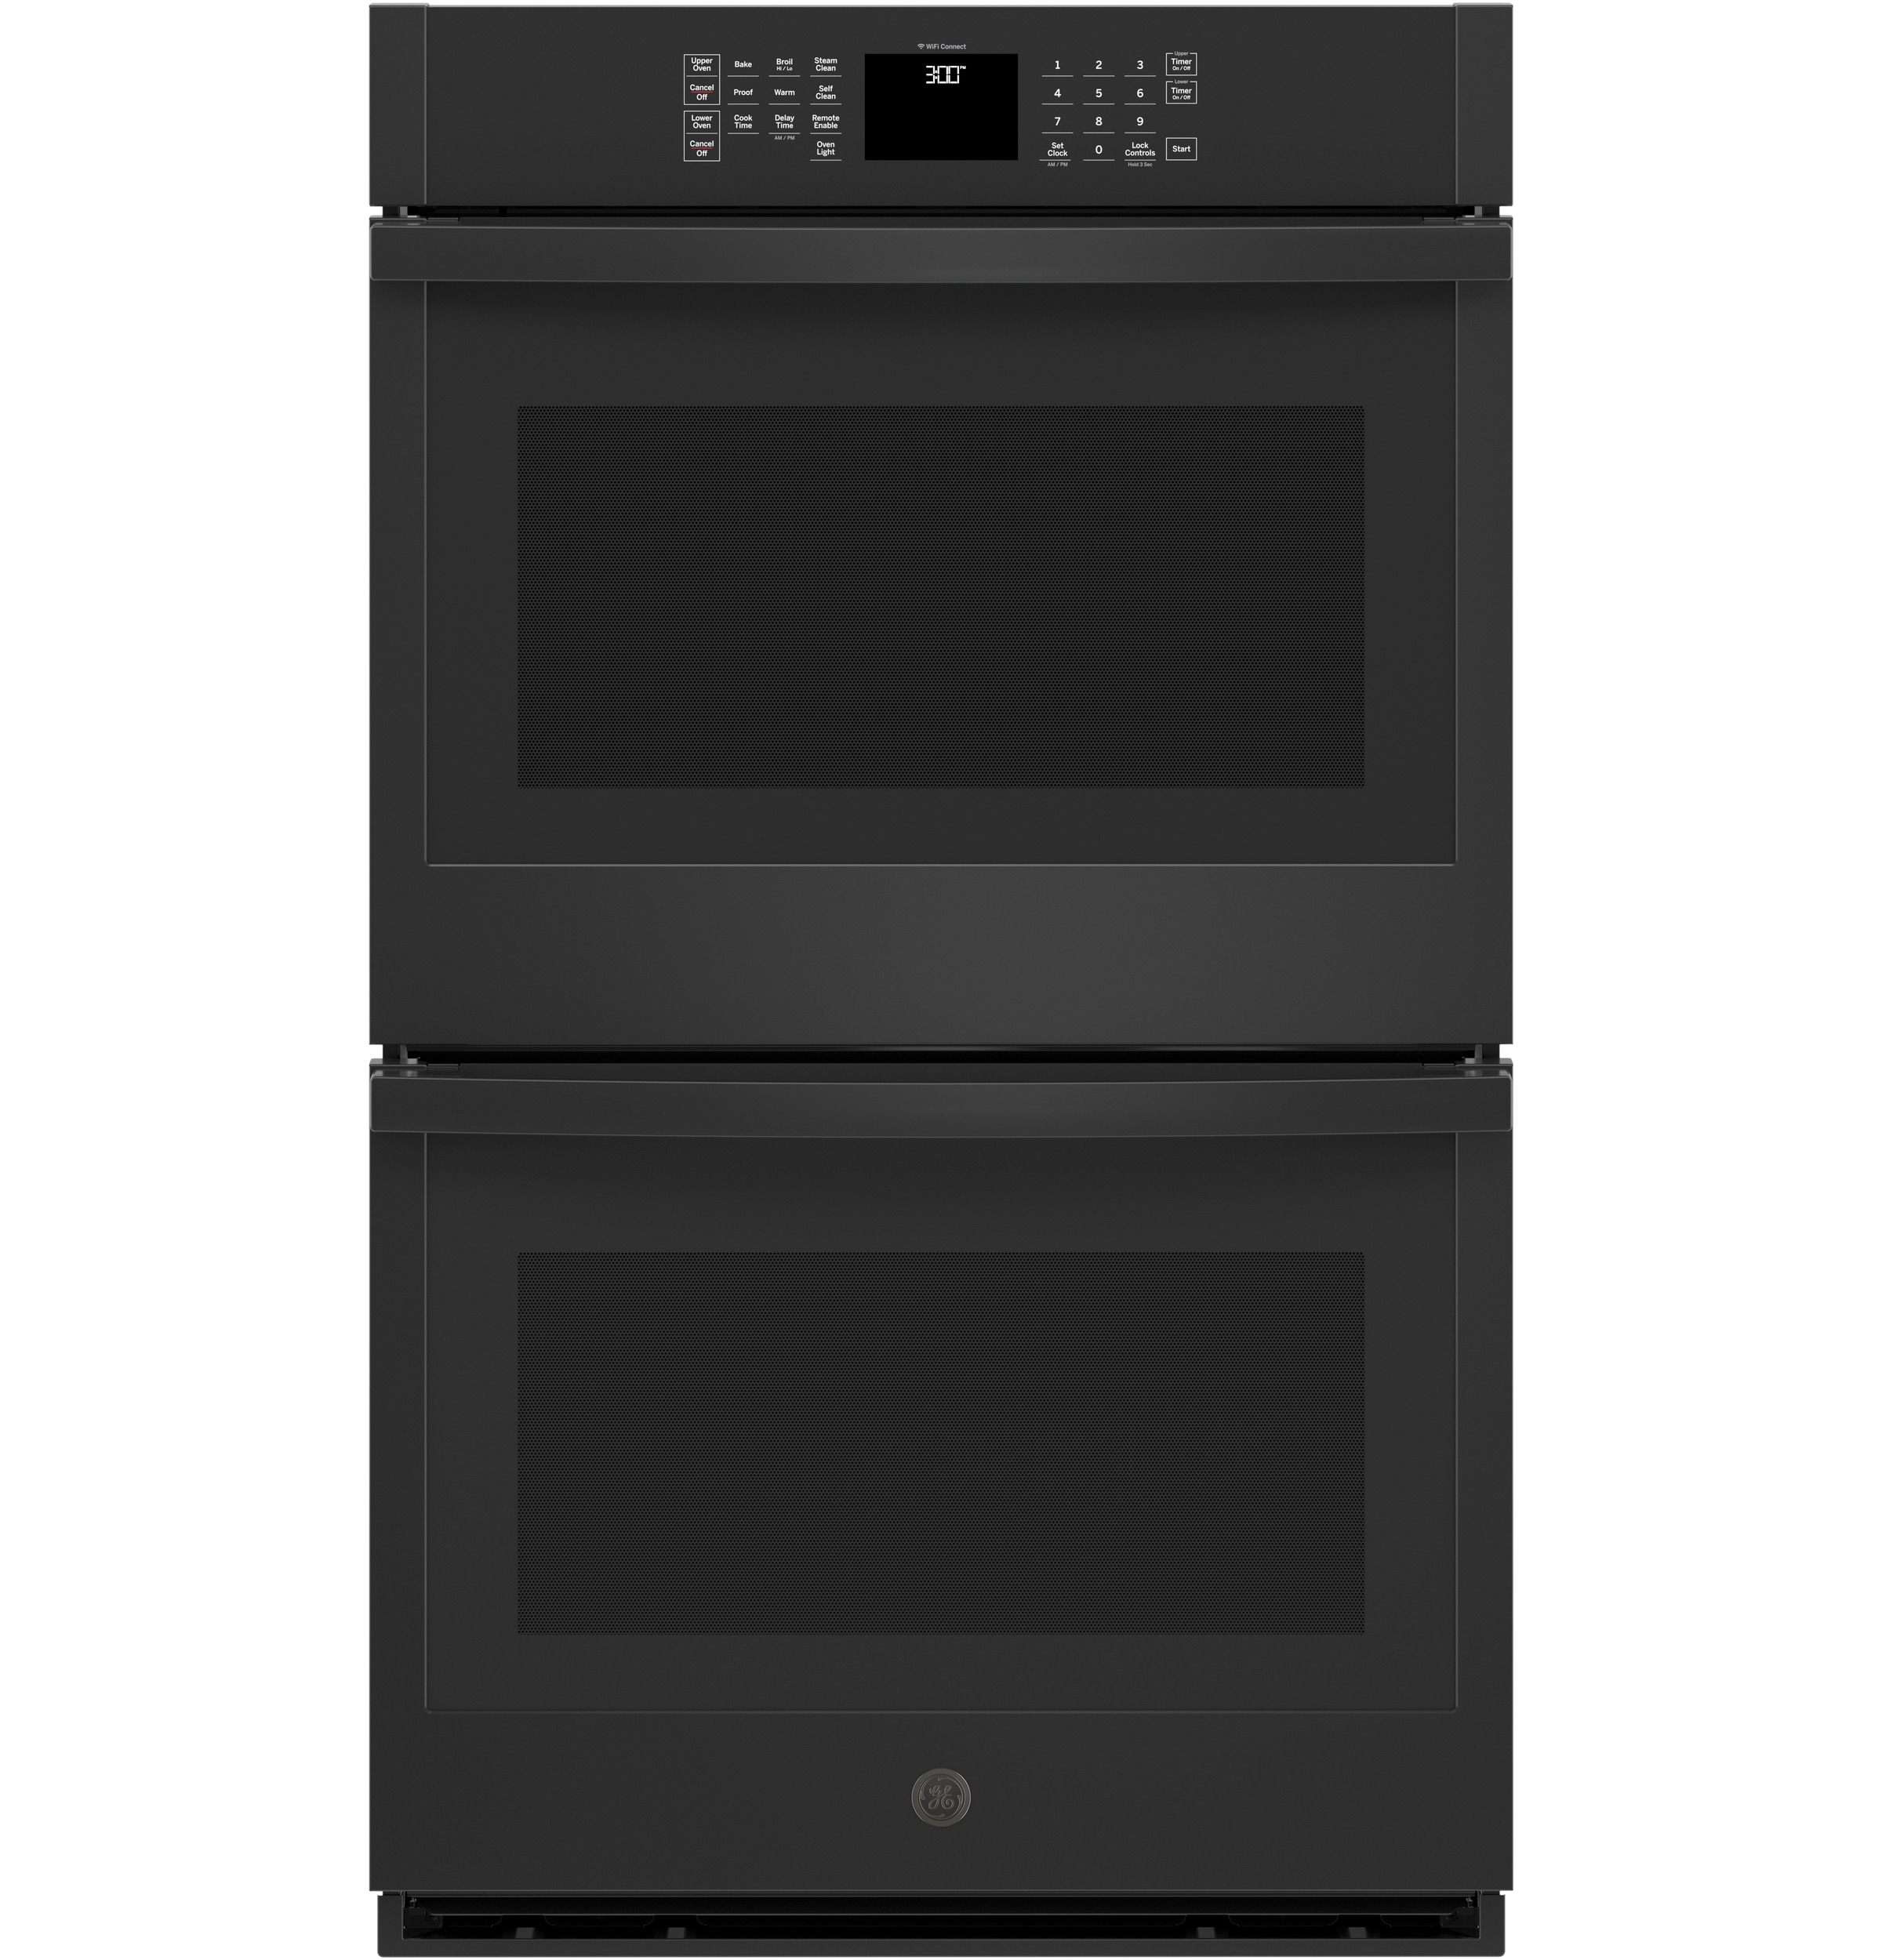 "GE GE® 30"" Smart Built-In Self-Clean Double Wall Oven with Never-Scrub Racks"